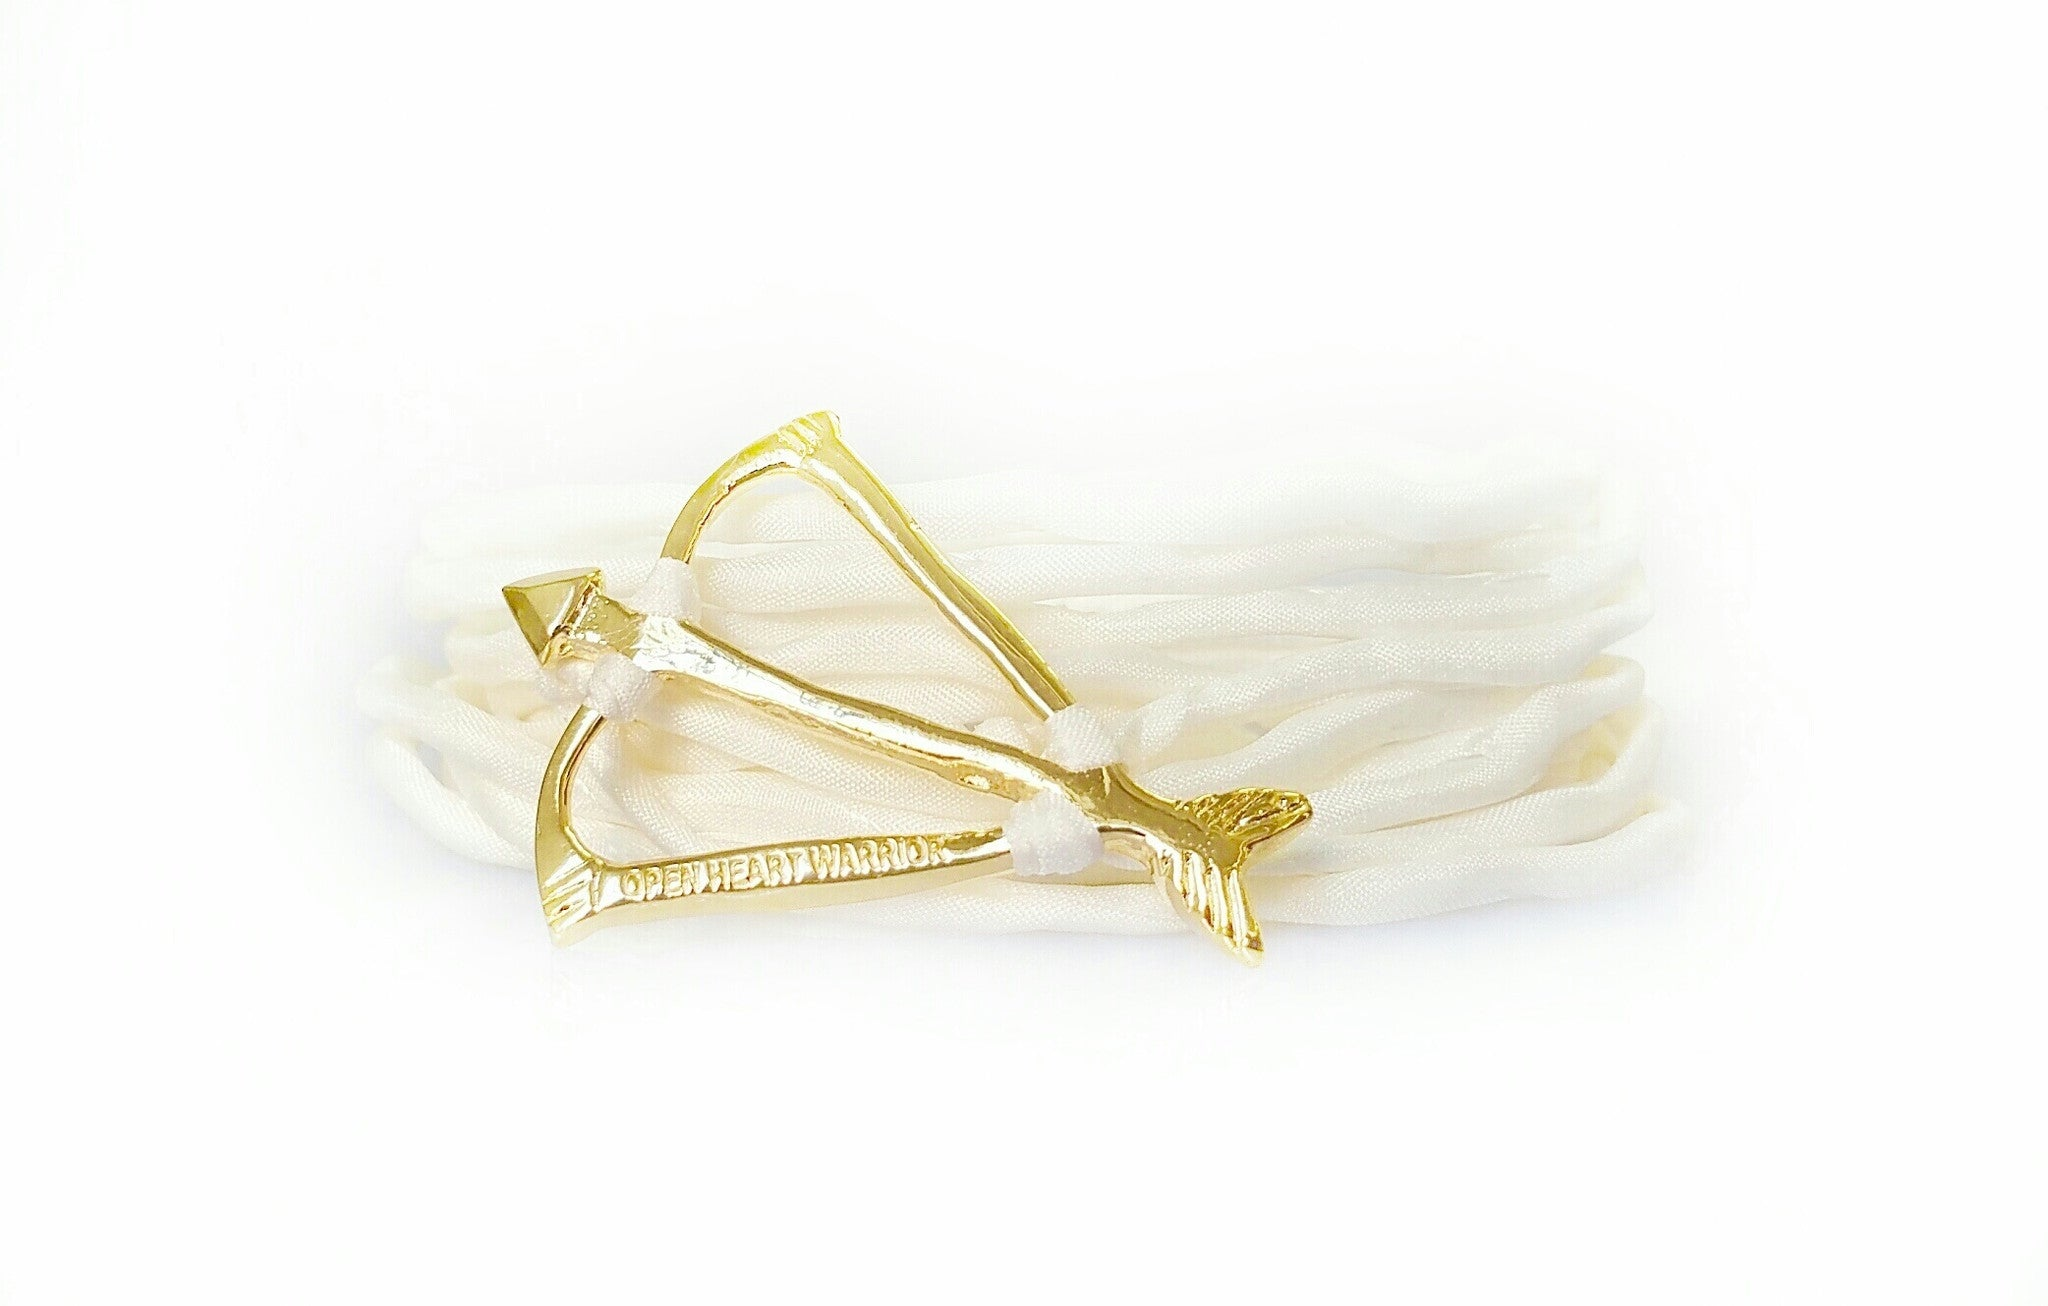 Open Heart Warrior Bow and Arrow Limited Edition White Silk Wrap Bracelet